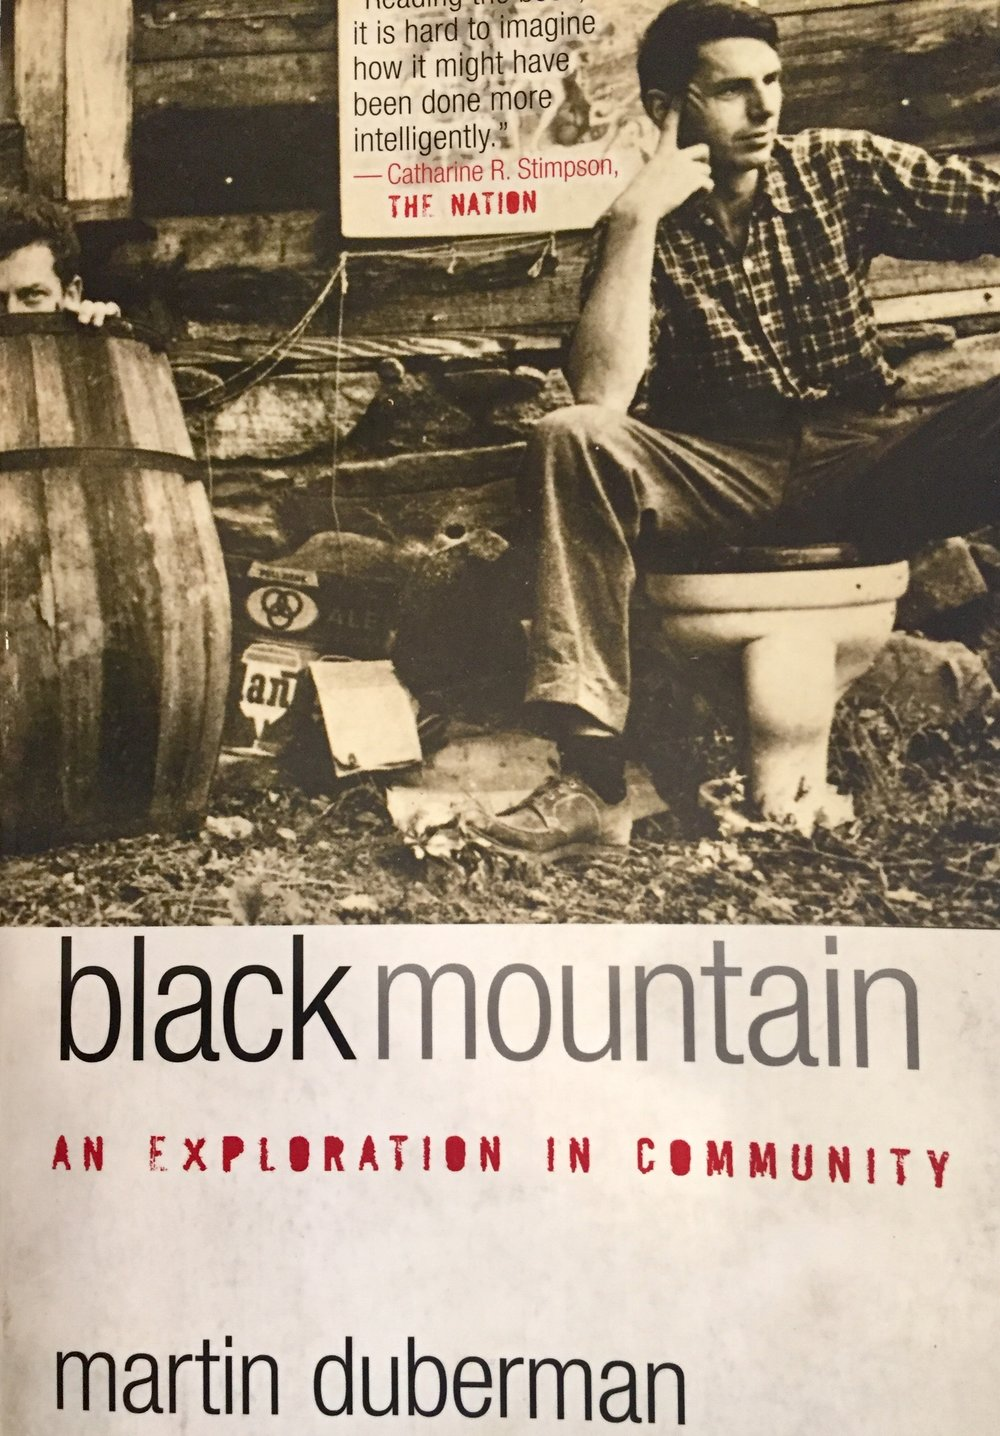 Black Mountain College: An Exploration in Community by Martin Duberman, Northwestern University Press 2009